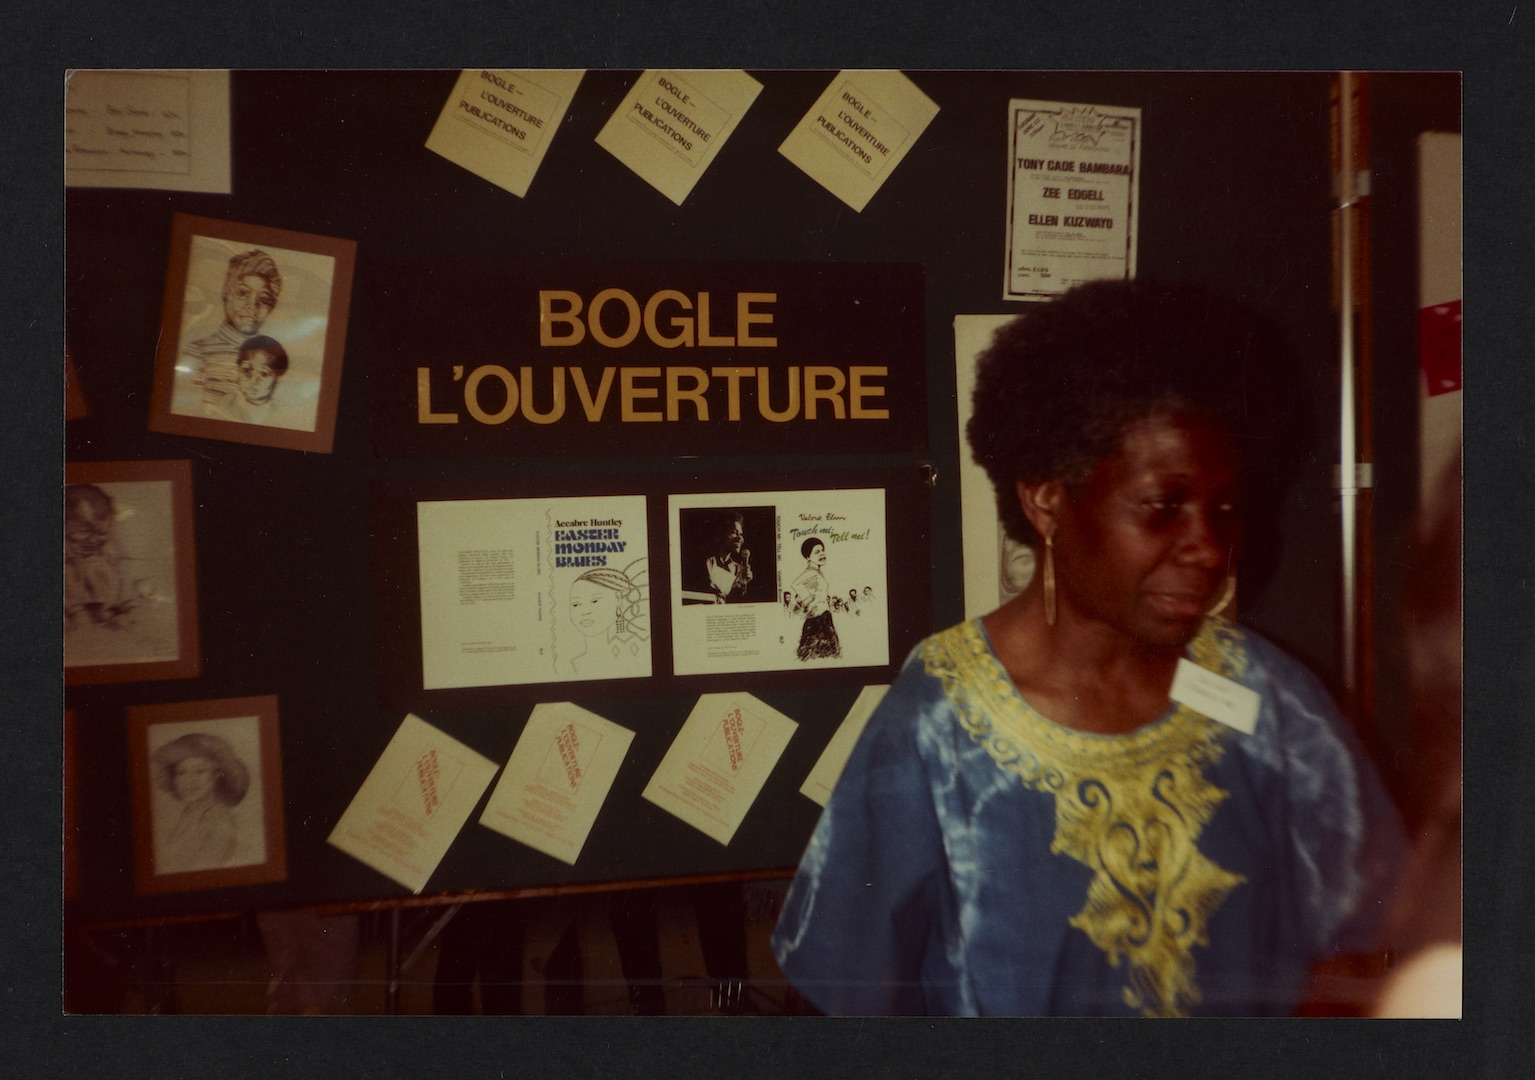 06 Jessica Huntley at Bogle-L'Ouverture Publications bookstall. c1980s. Huntley Archives at London M